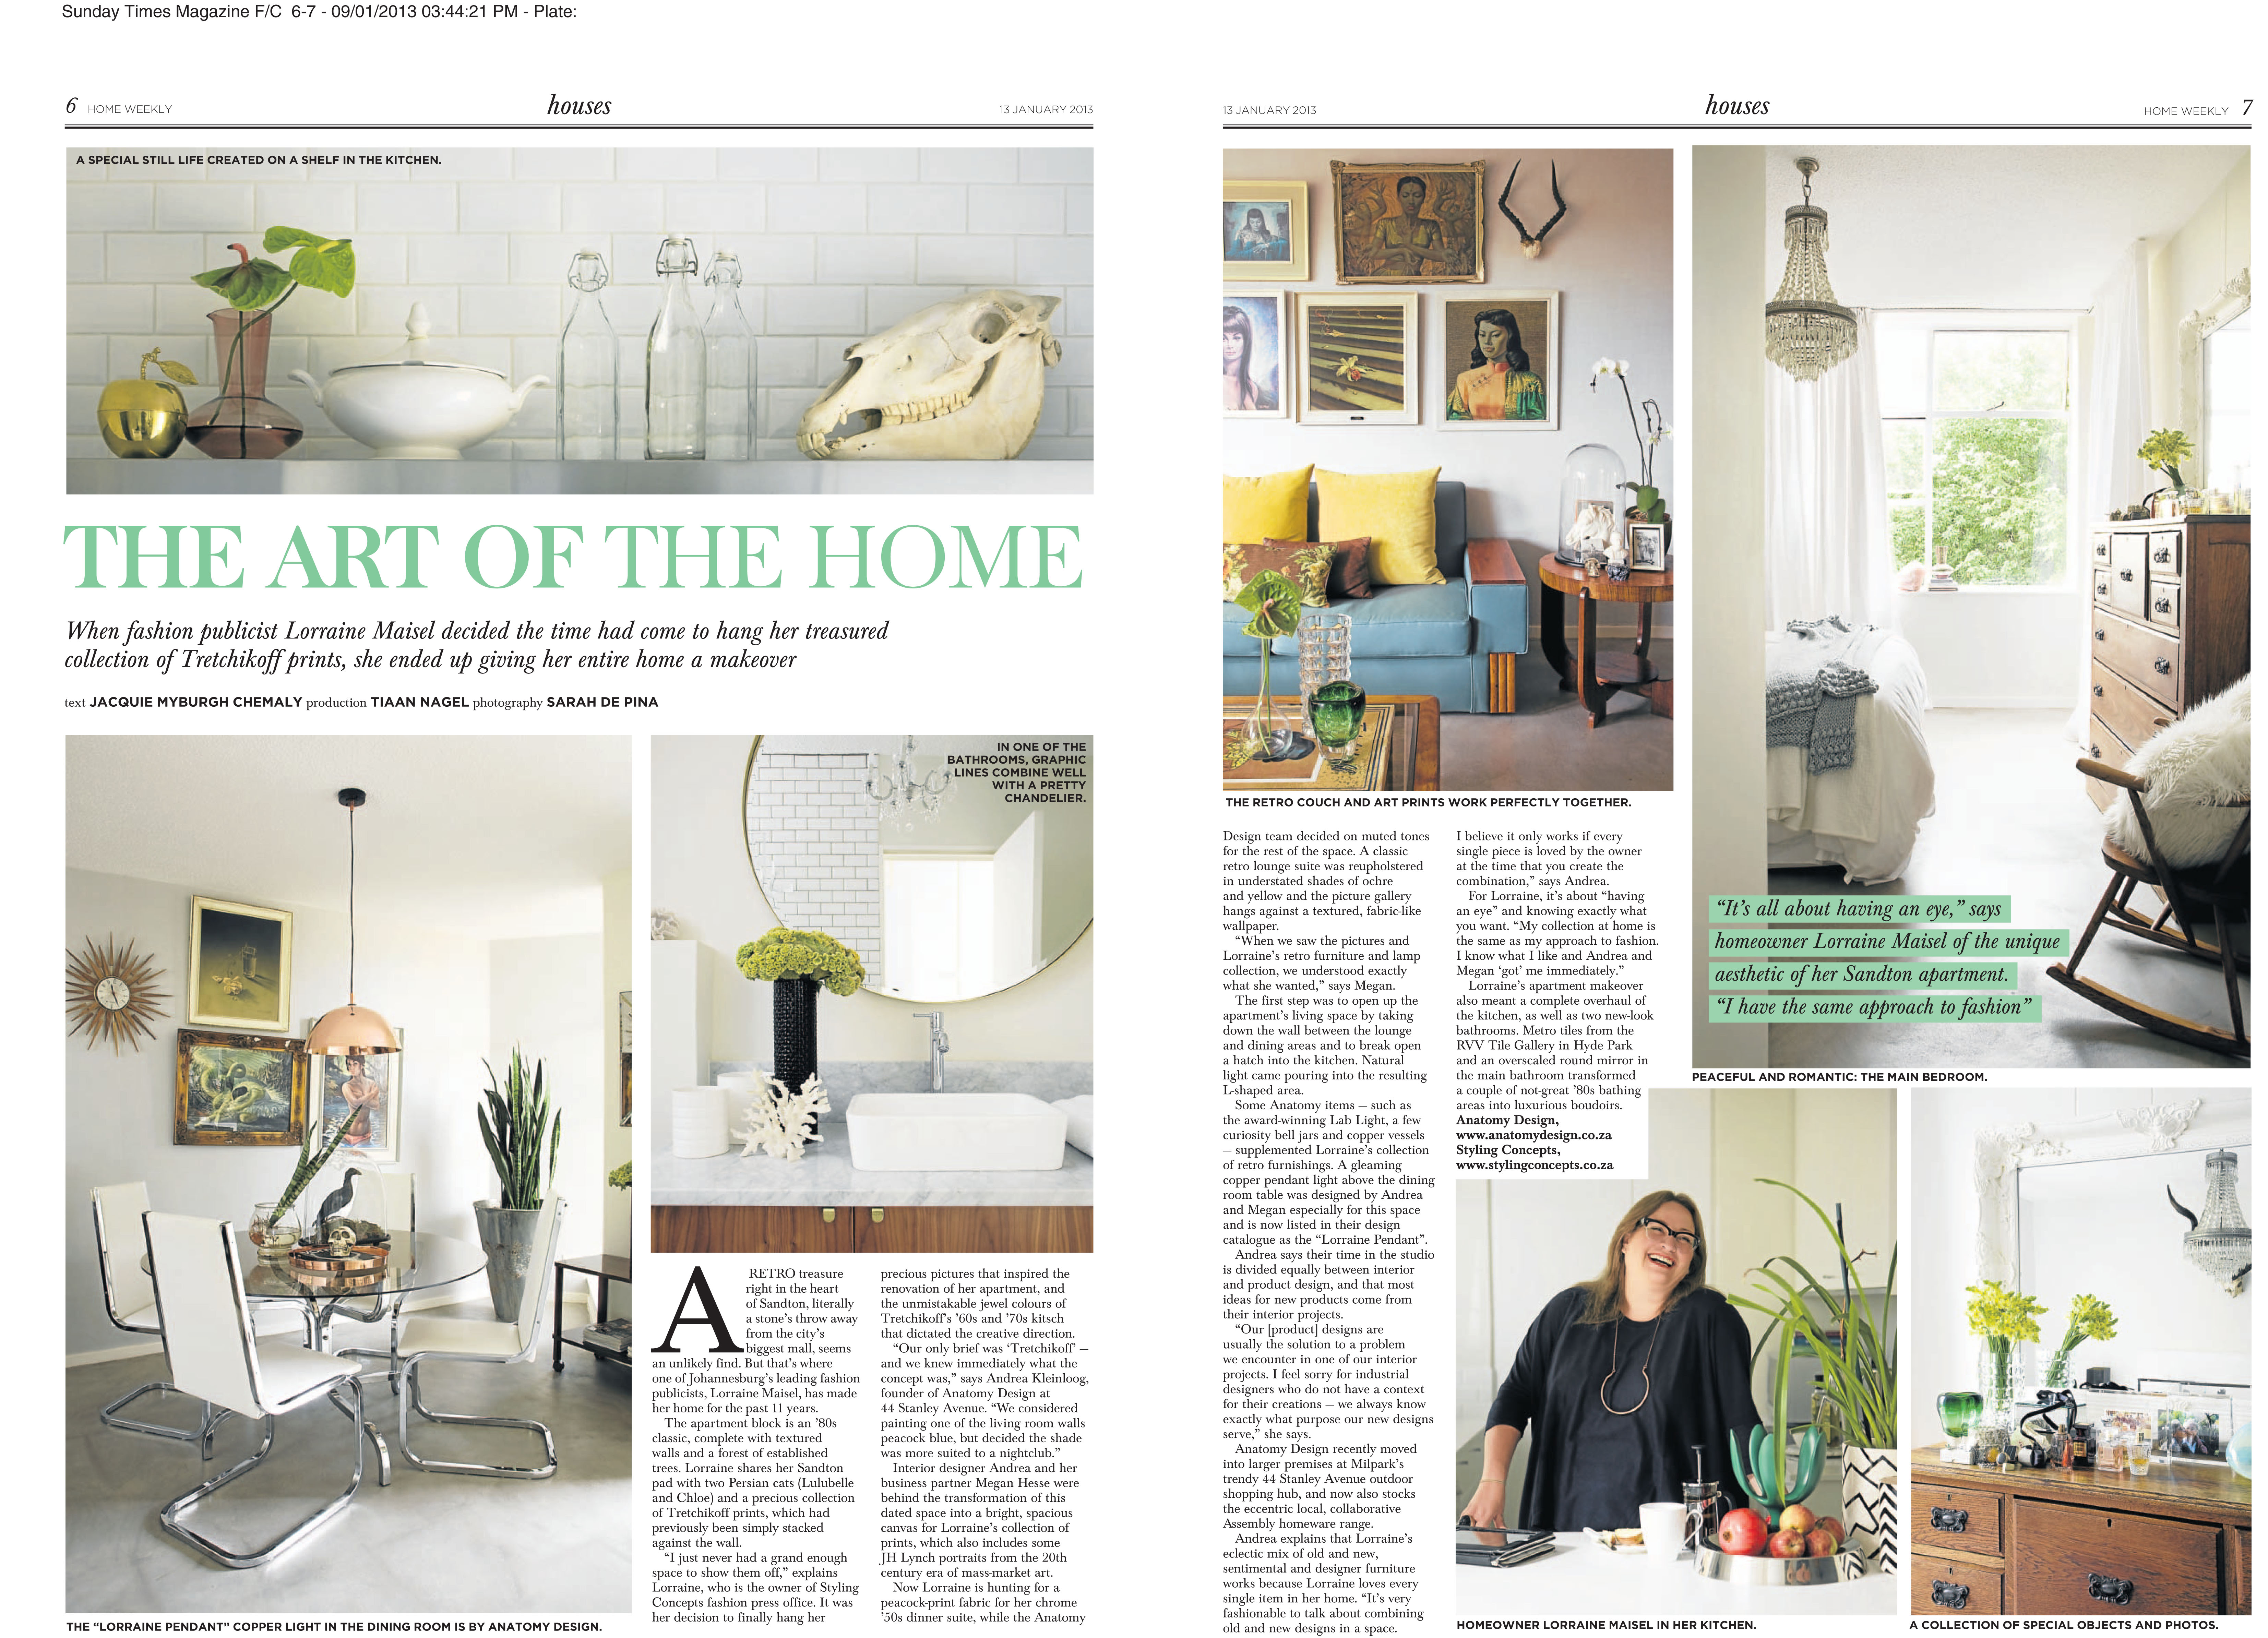 13_01_2013 01 01hw1301homeweekly_al_6 7 - Interior Design Magazine Article